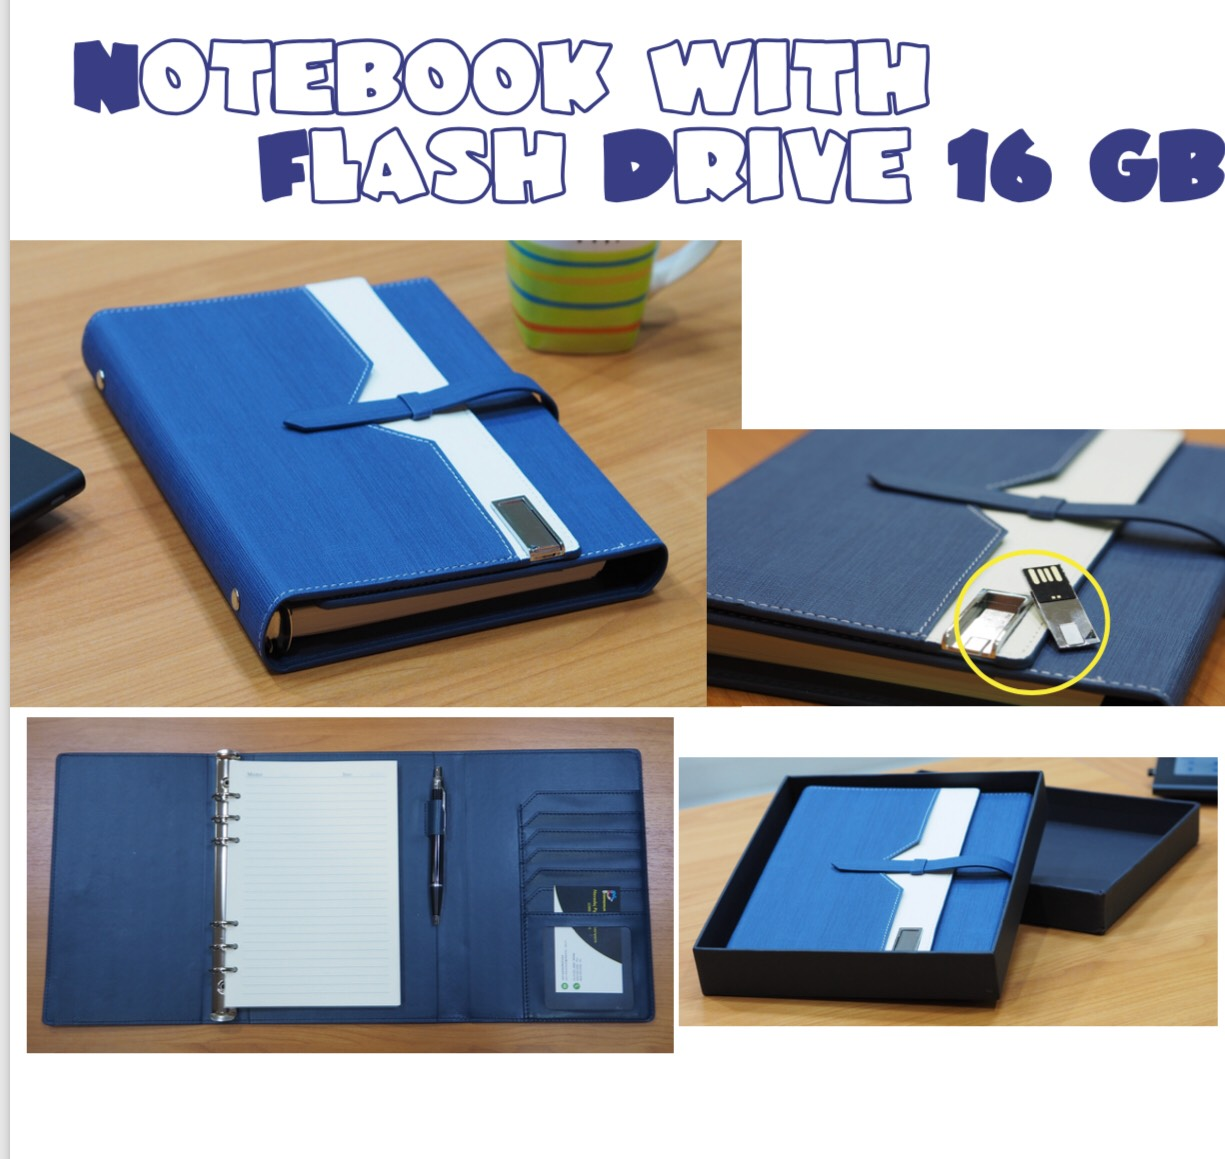 Notebook with Flash Drive 16GB.